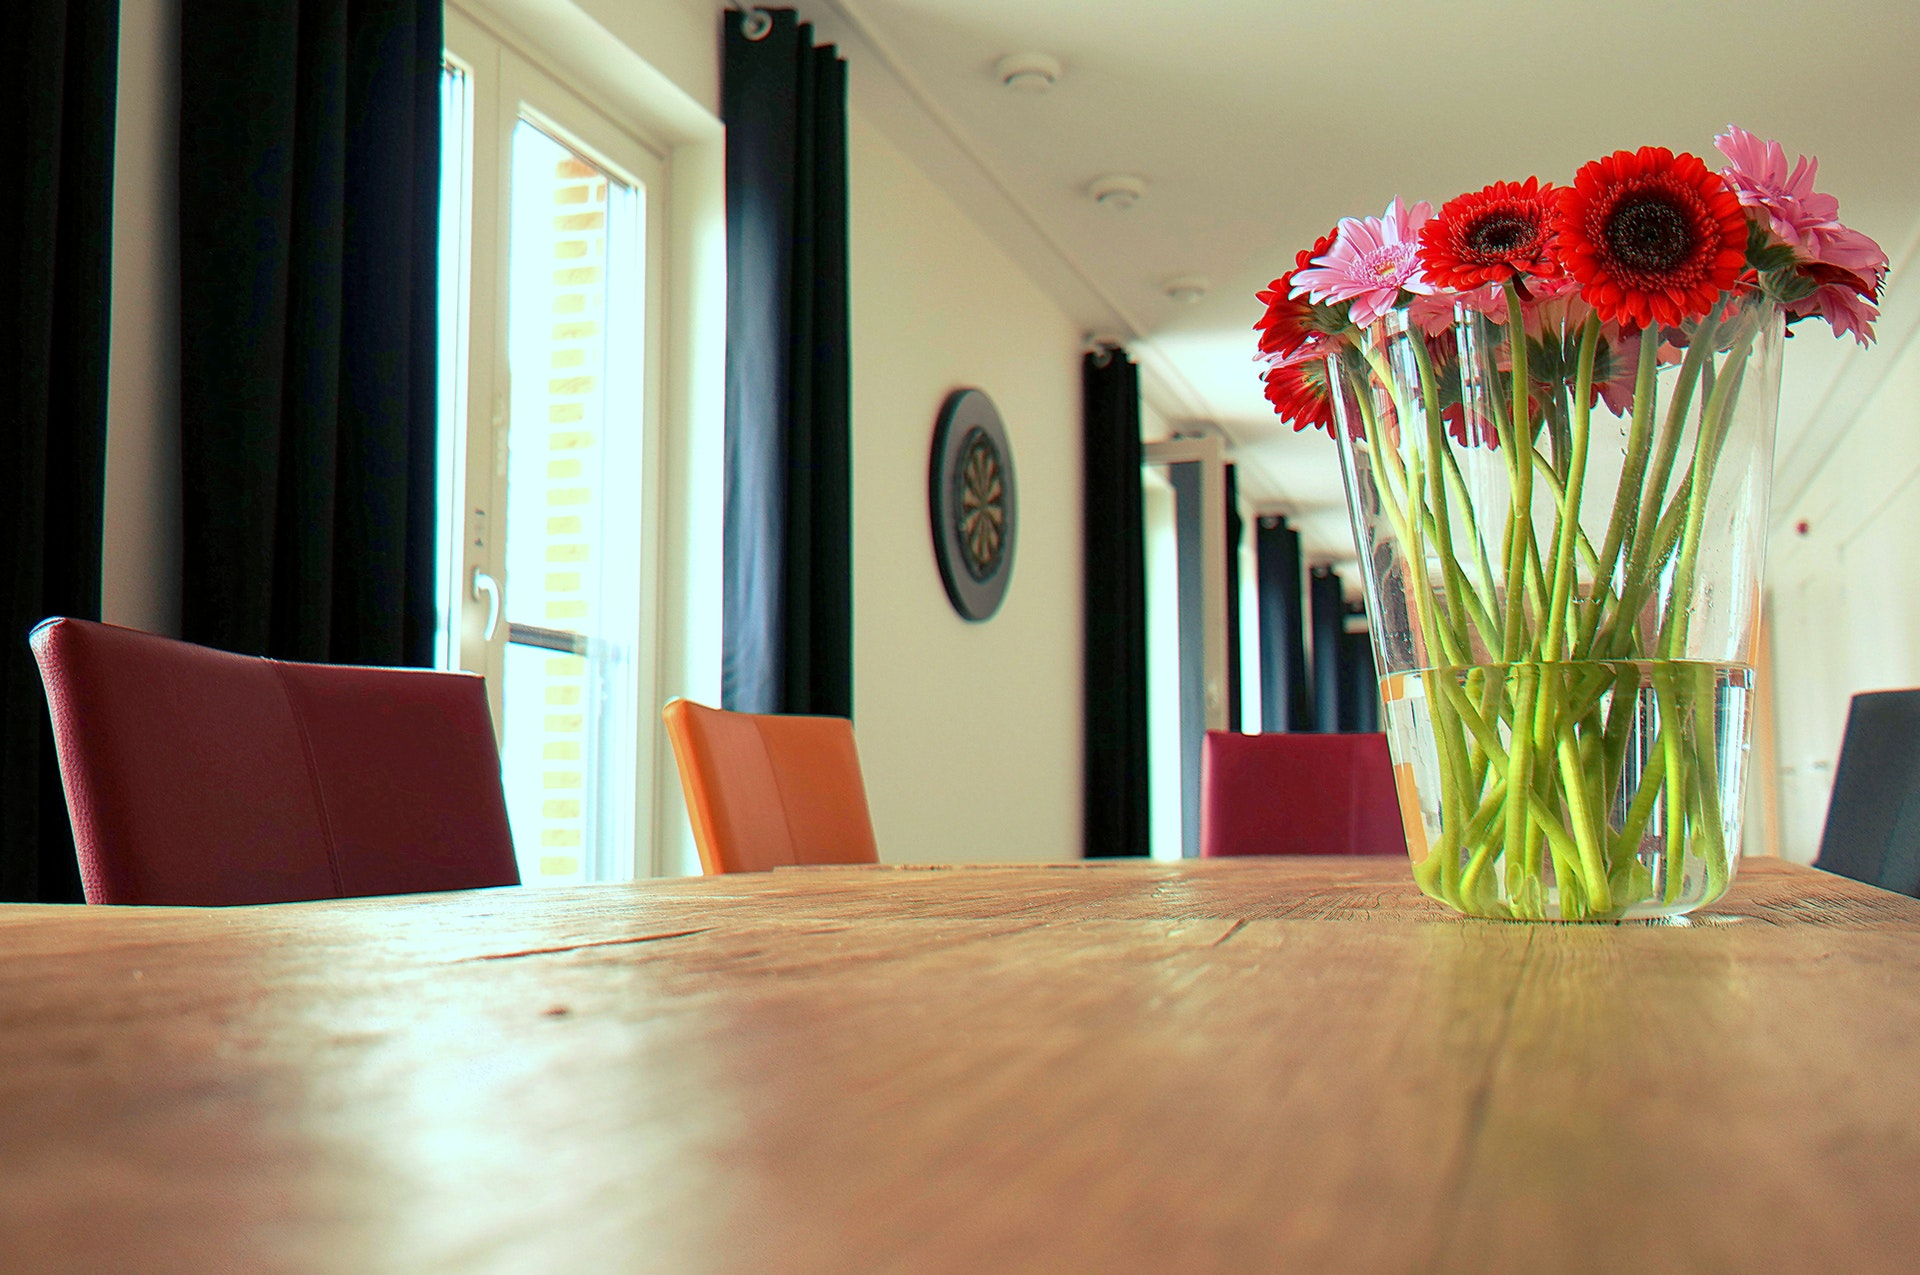 How to sell an empty home quickly